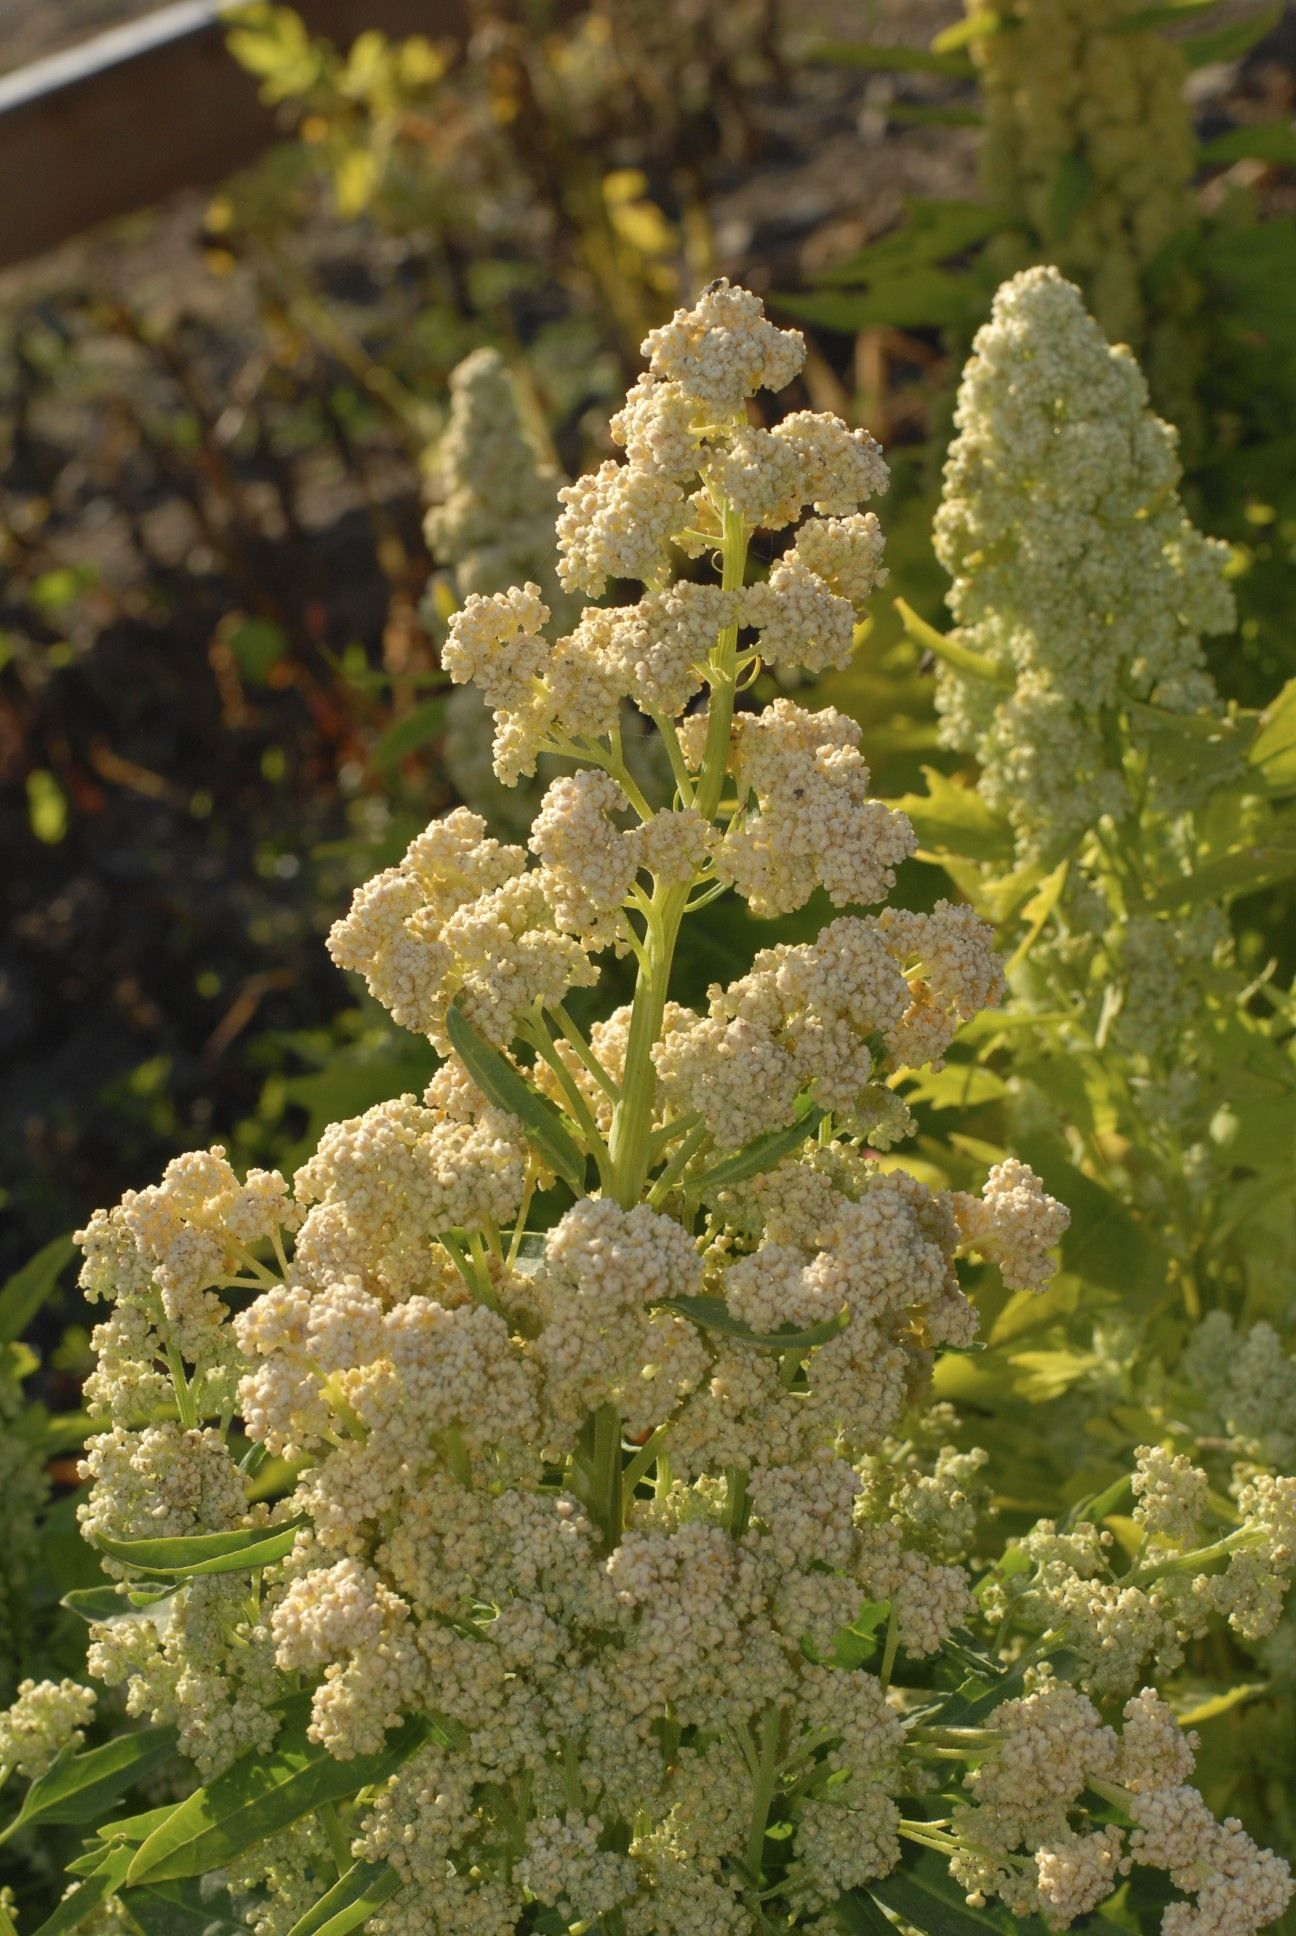 Temuco Quinoa: Beautiful orange seed heads and yellow-green, large roundish leaves. Medium-size, golden seeds are very sweet. Accepts more moisture than most.